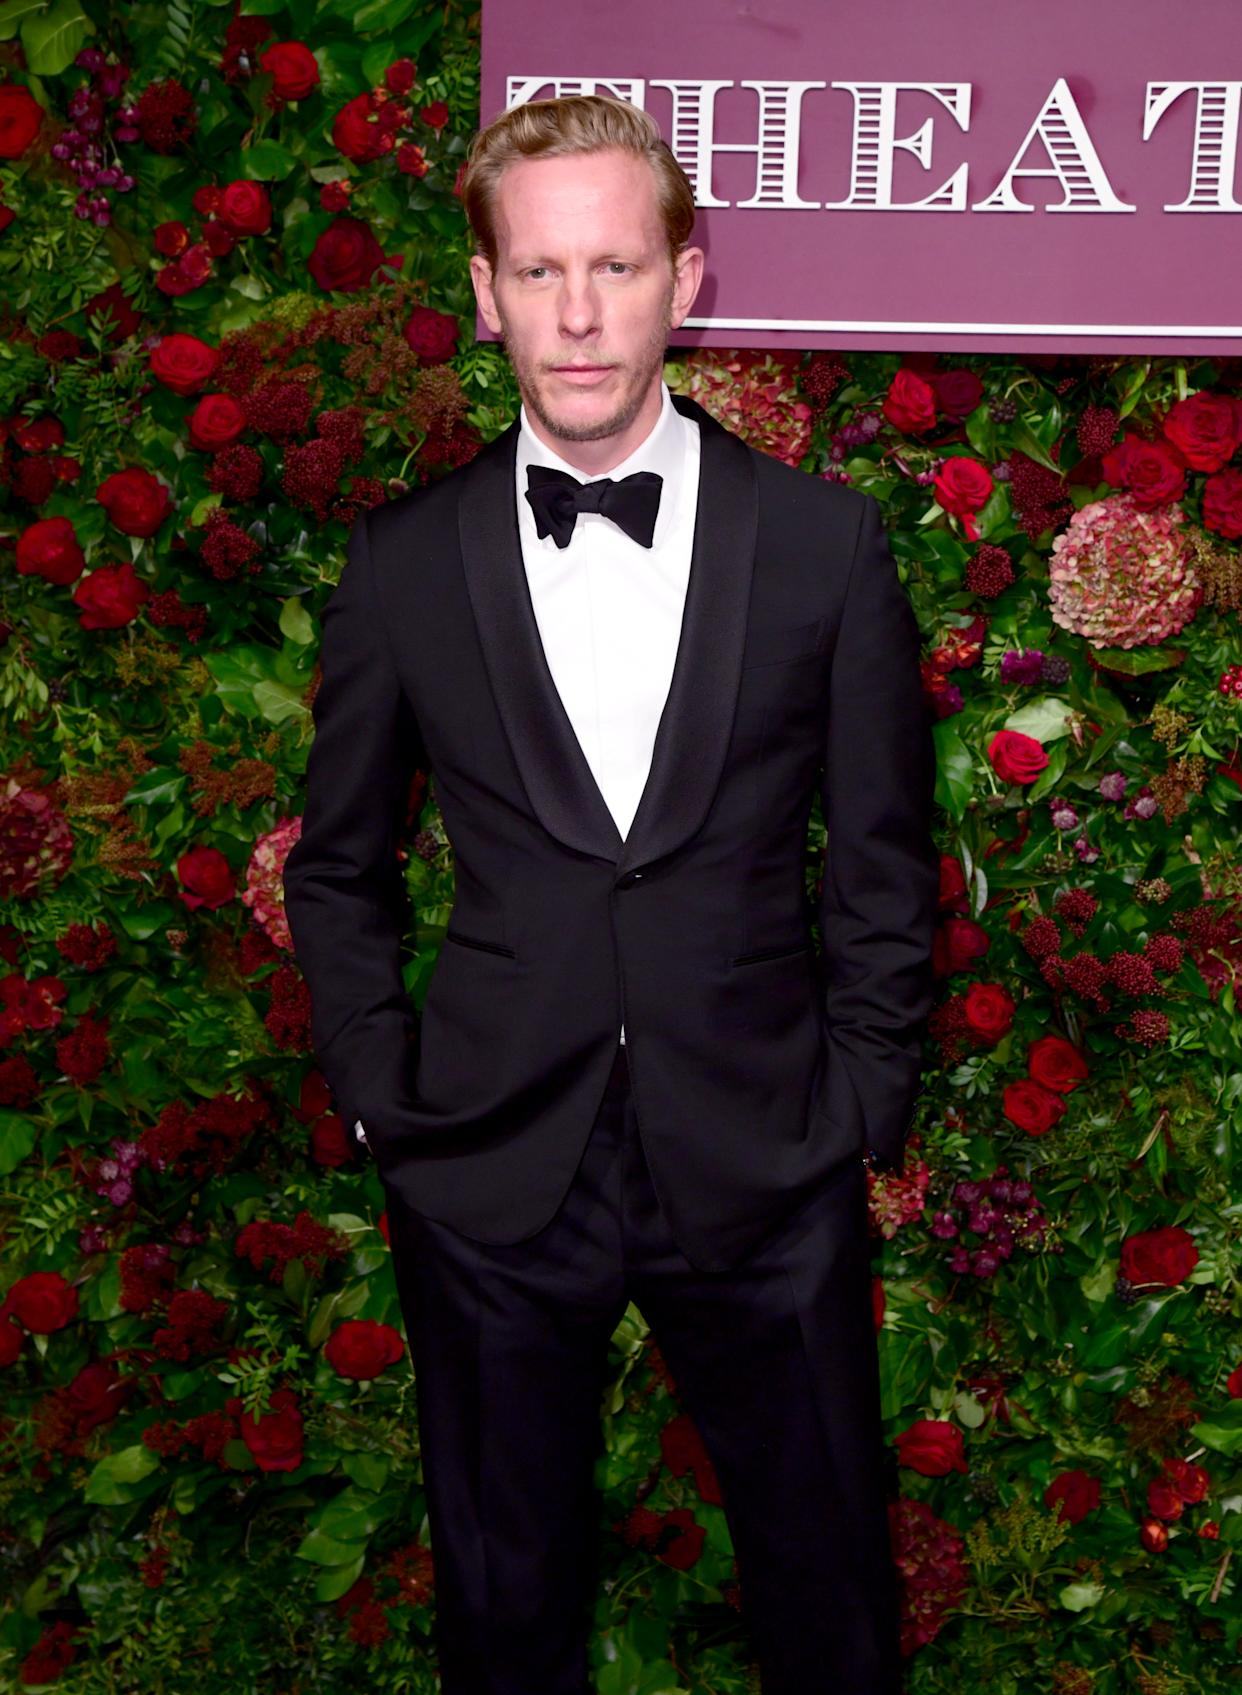 Laurence Fox attending the 65th Evening Standard Theatre Awards at the London Coliseum, London. (Photo by Ian West/PA Images via Getty Images)